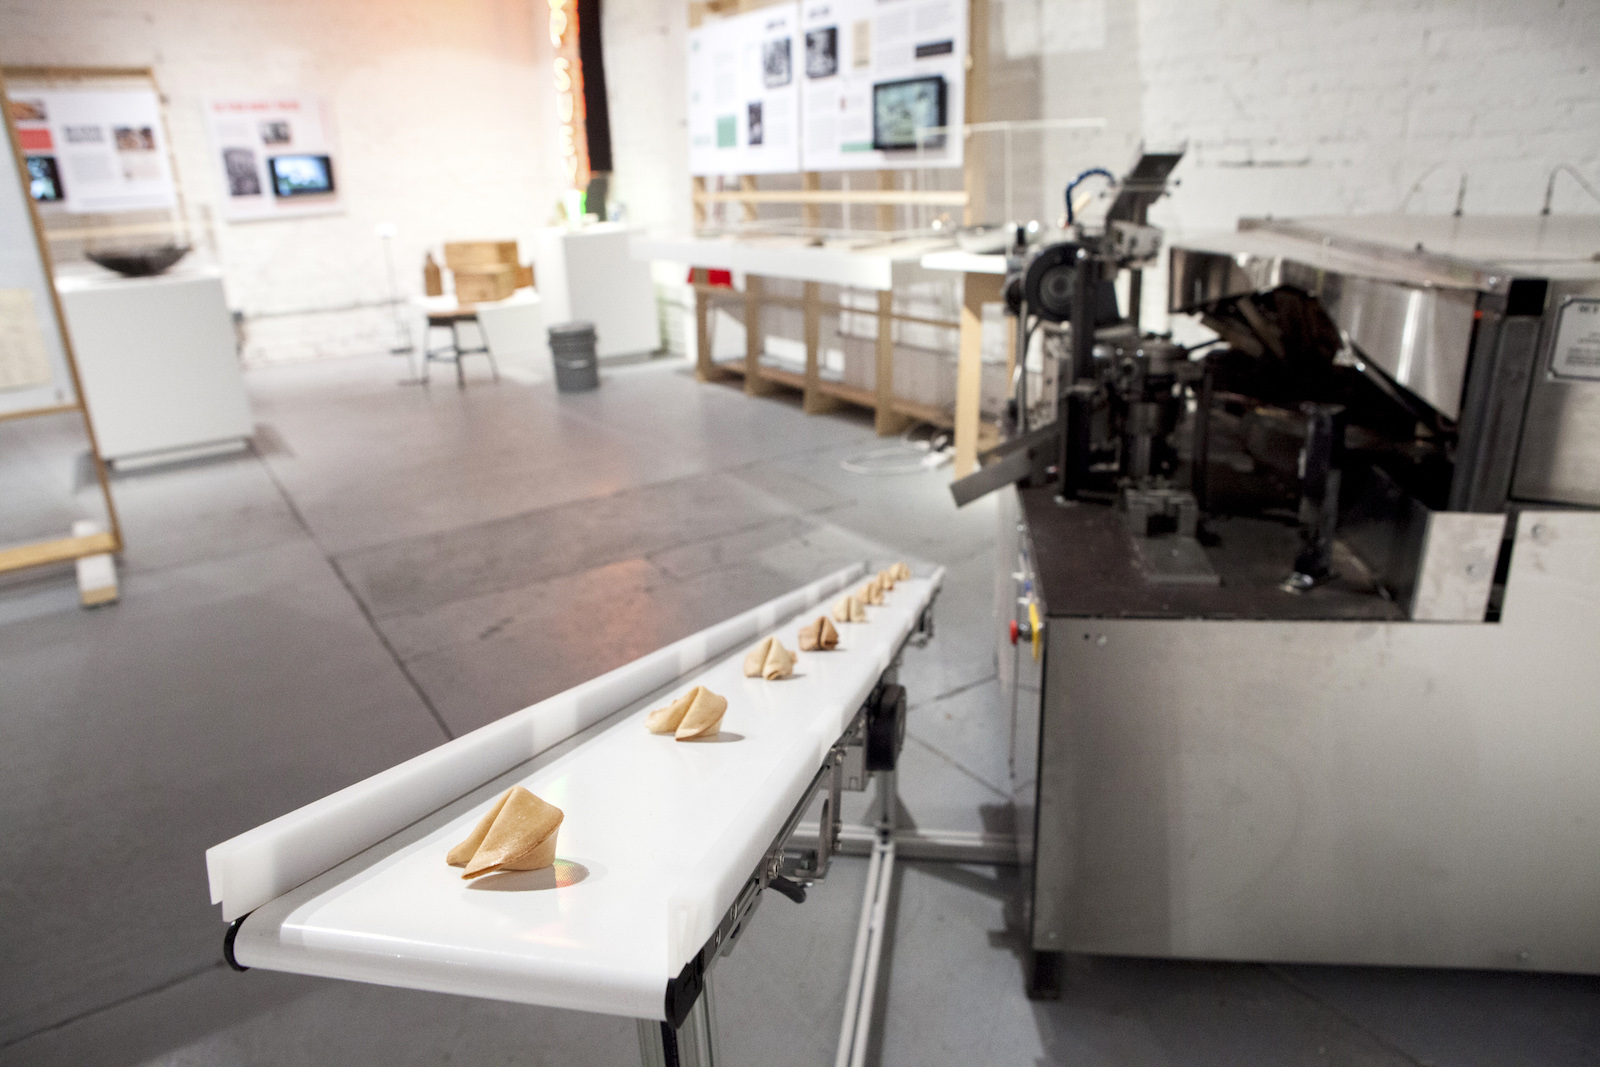 mofad-chow-fortune-cookie-machine